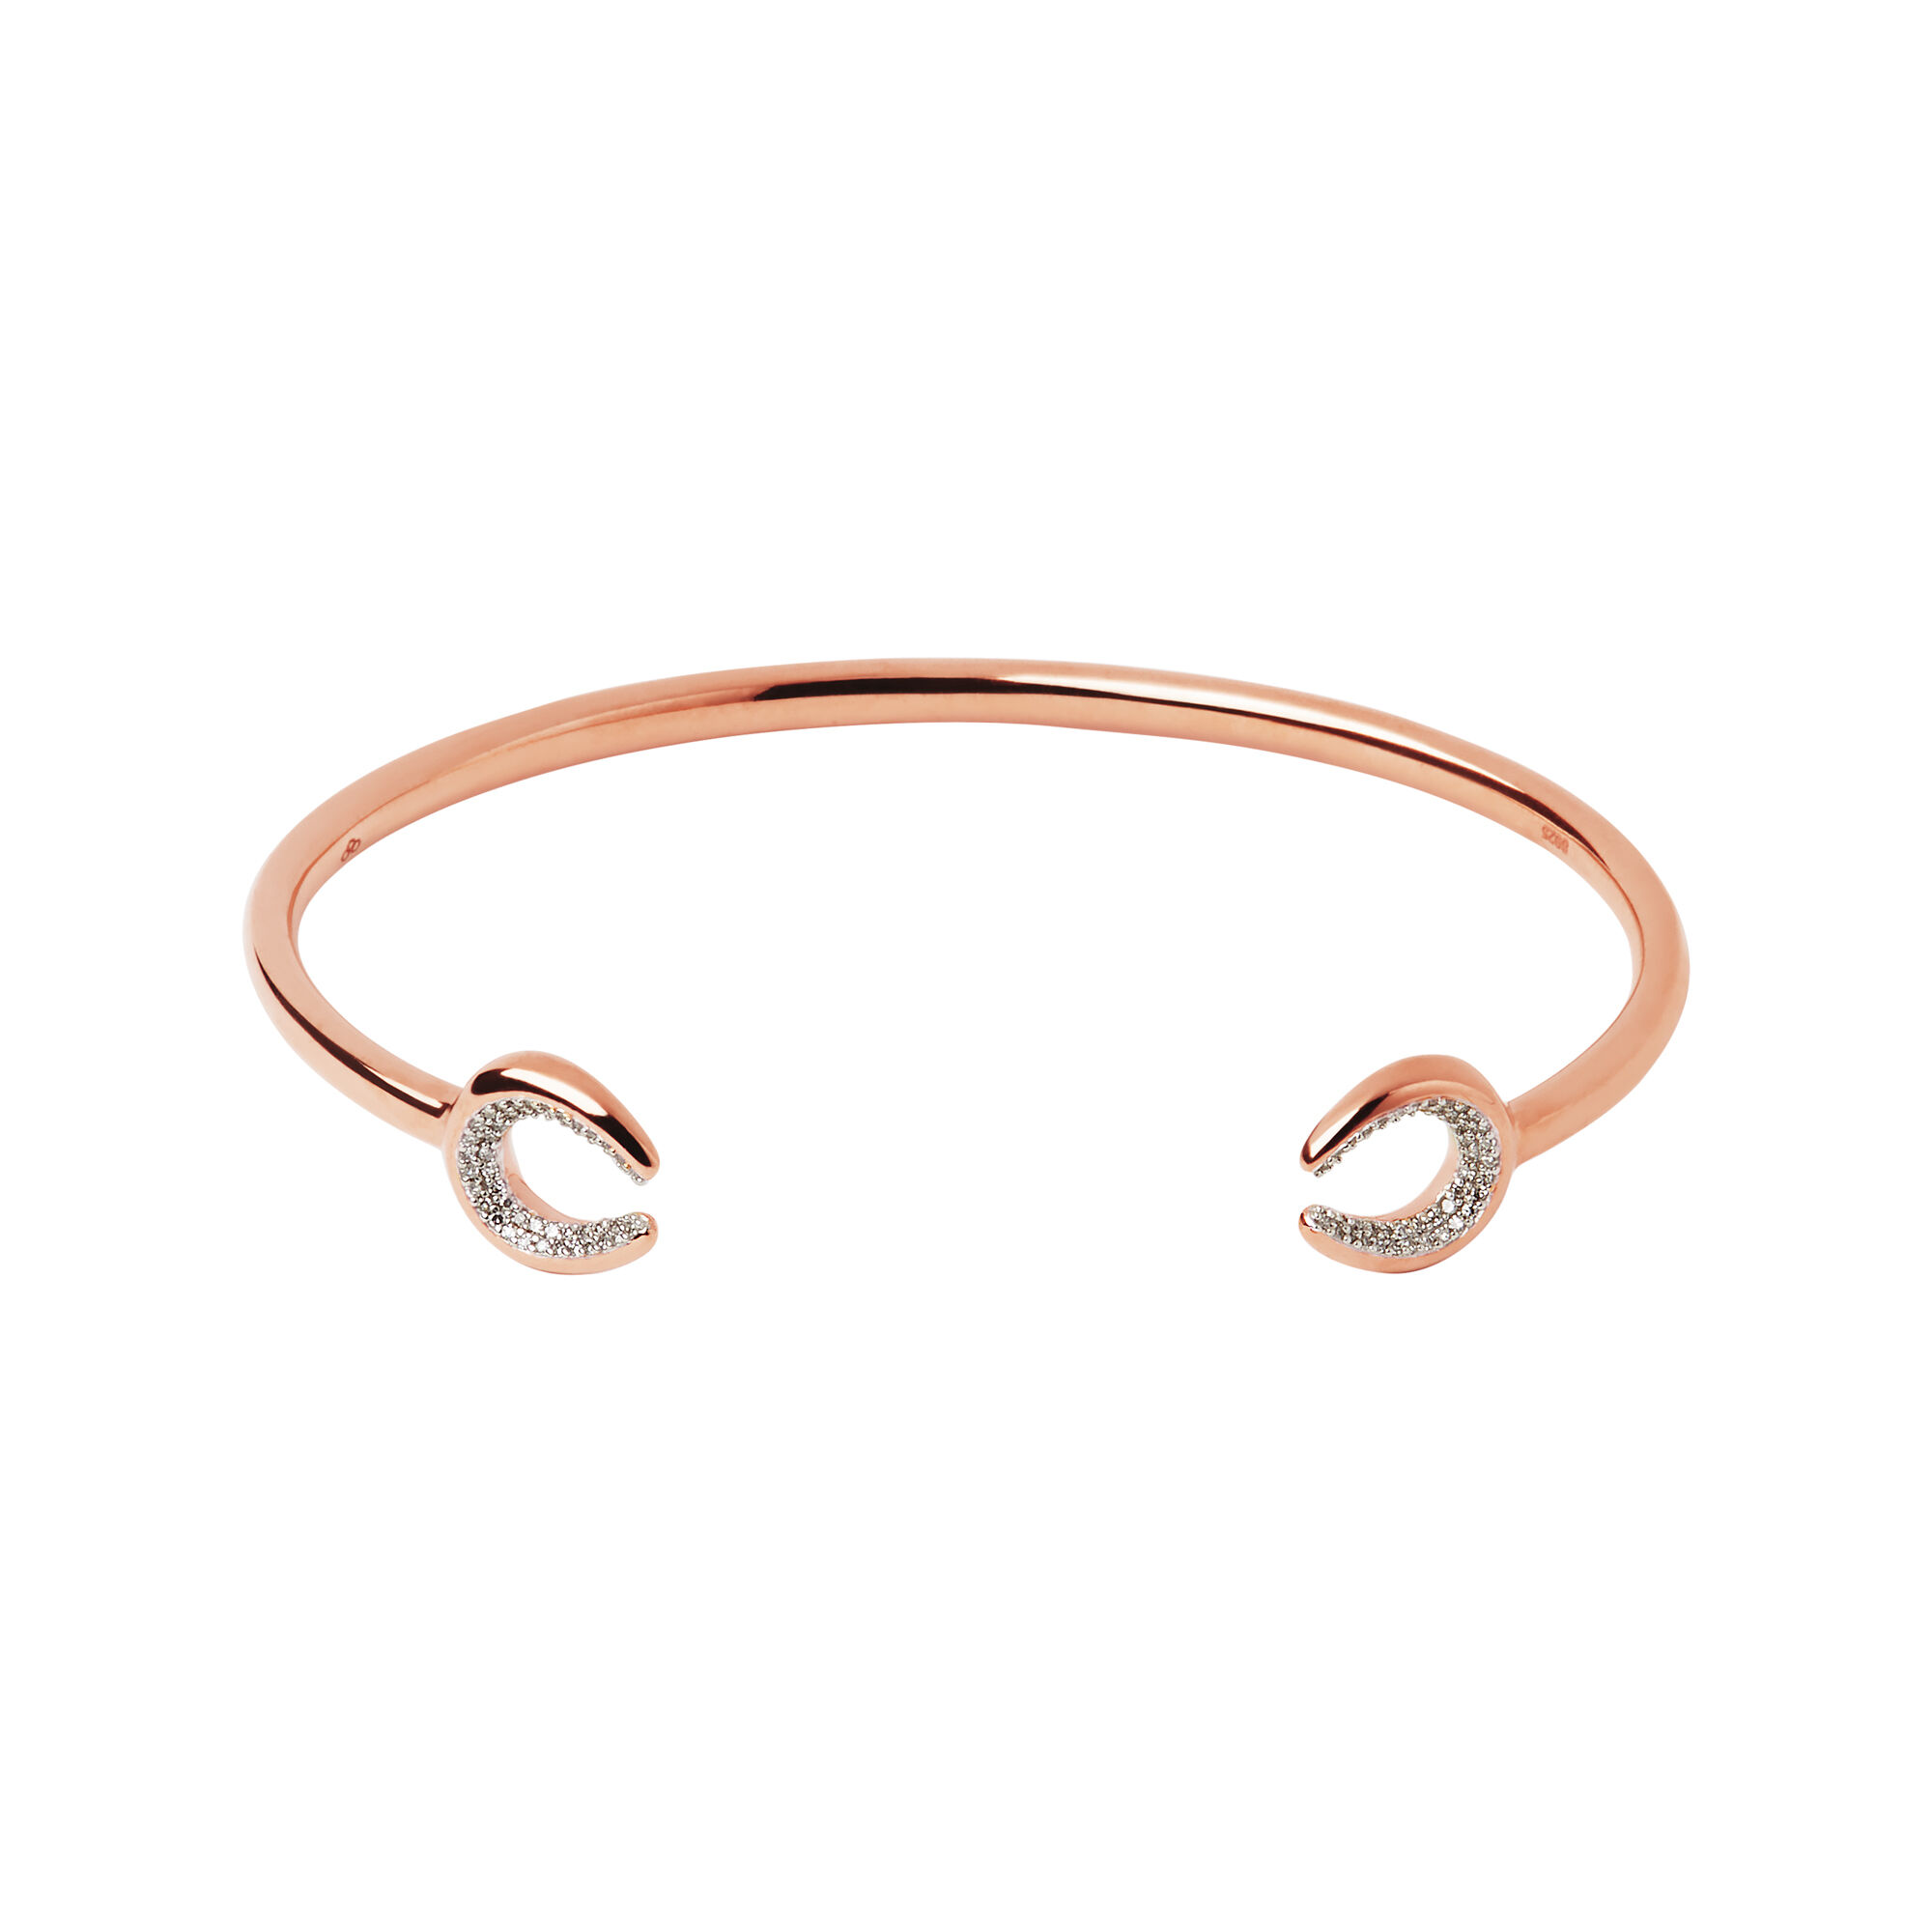 gold lyst bar and bracelet rose meira pink t diamond in k s women chain bangles jewelry bangle